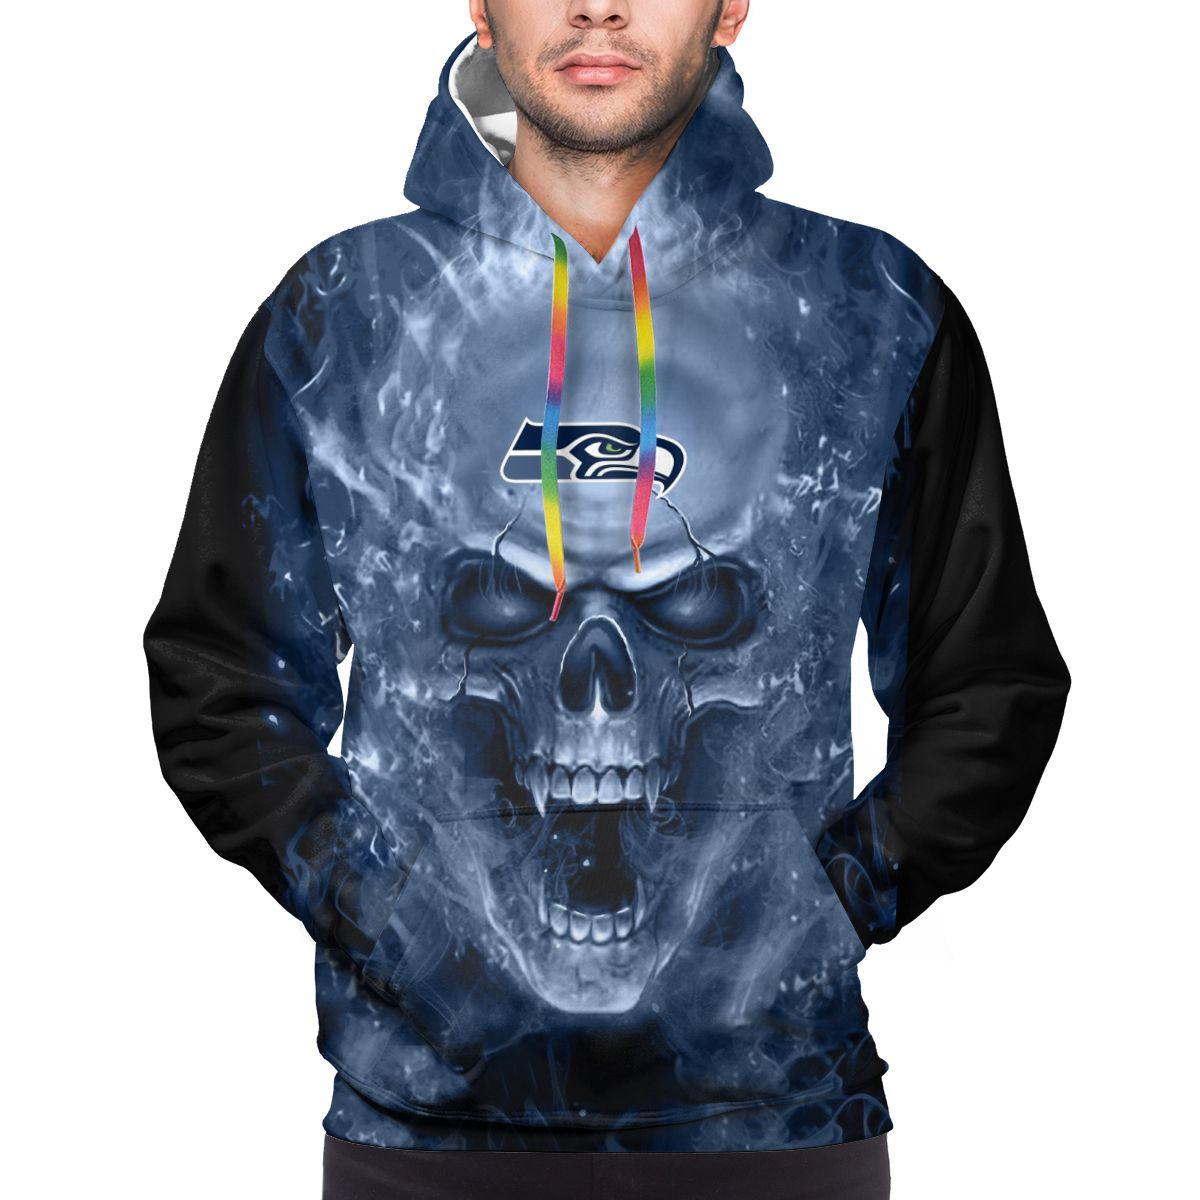 3D Skull Seahawks Logo Print Hoodies For Men Pullover Sweatshirt